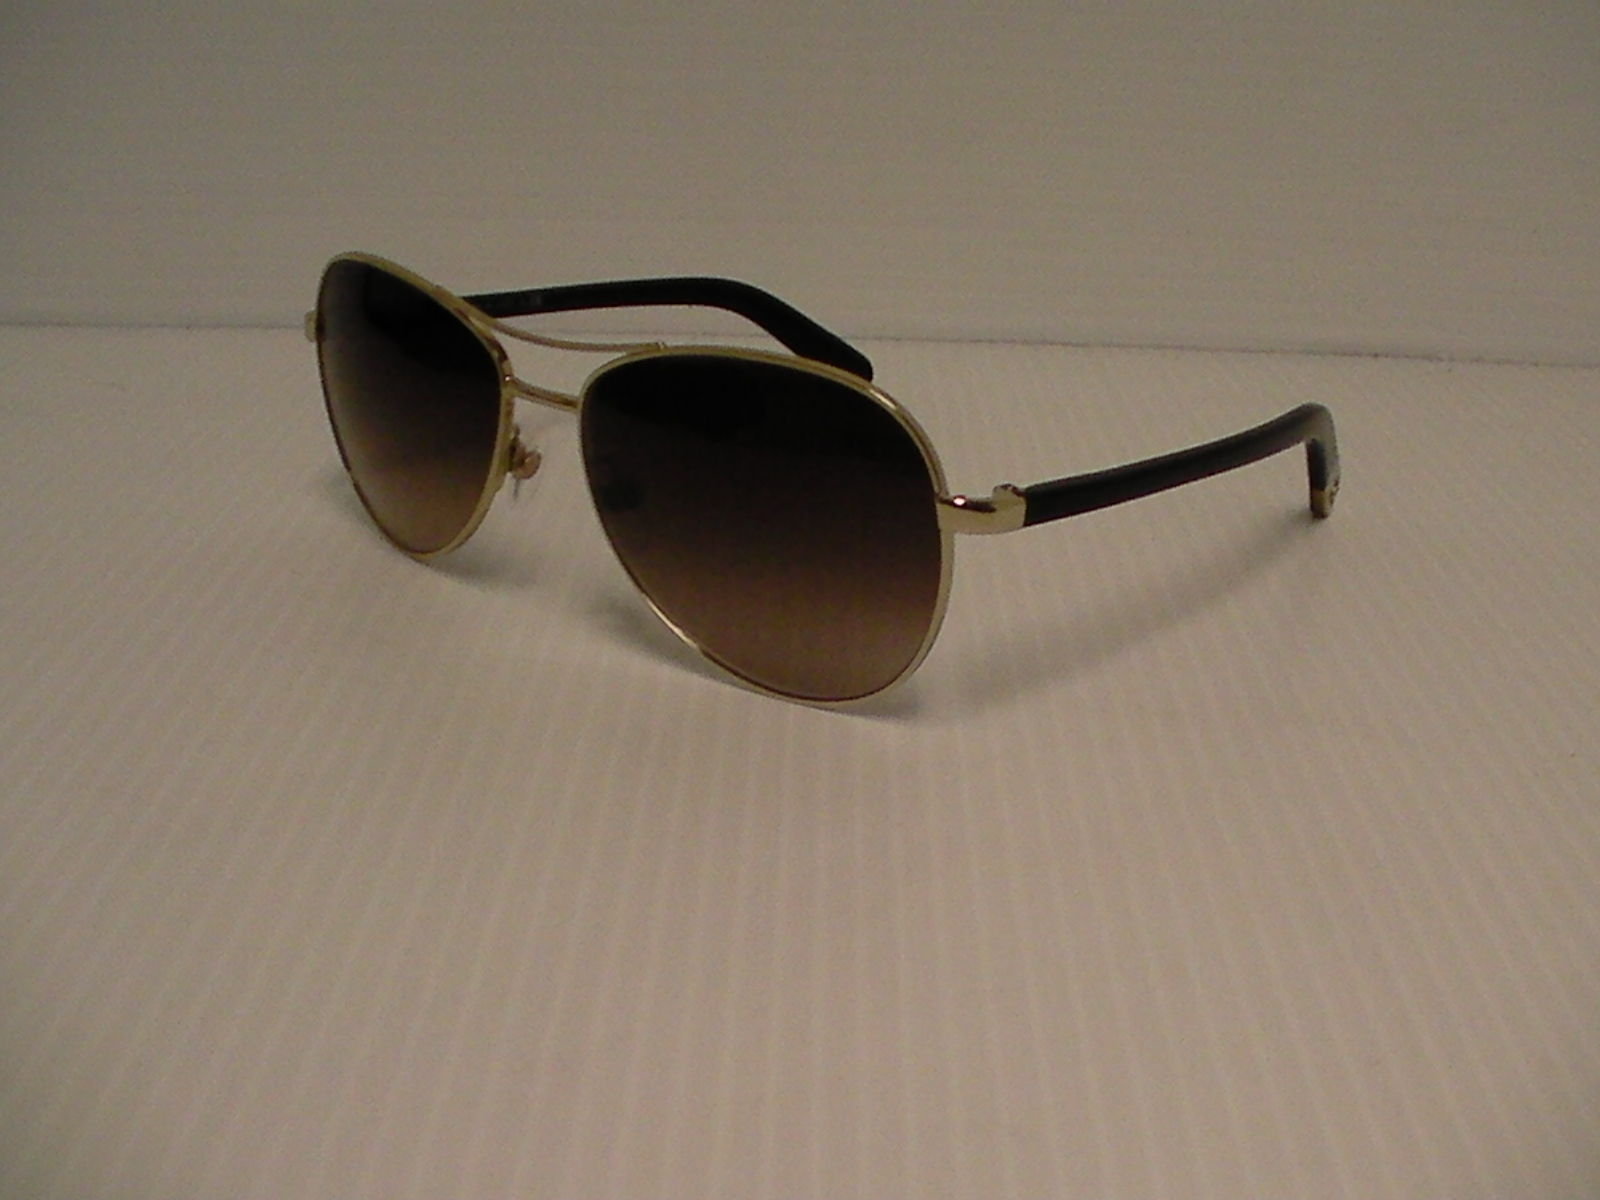 Authentic Chanel 4201 c.395 3B gold brown lenses Aviator Sunglasses 58mm c4f277f17a15